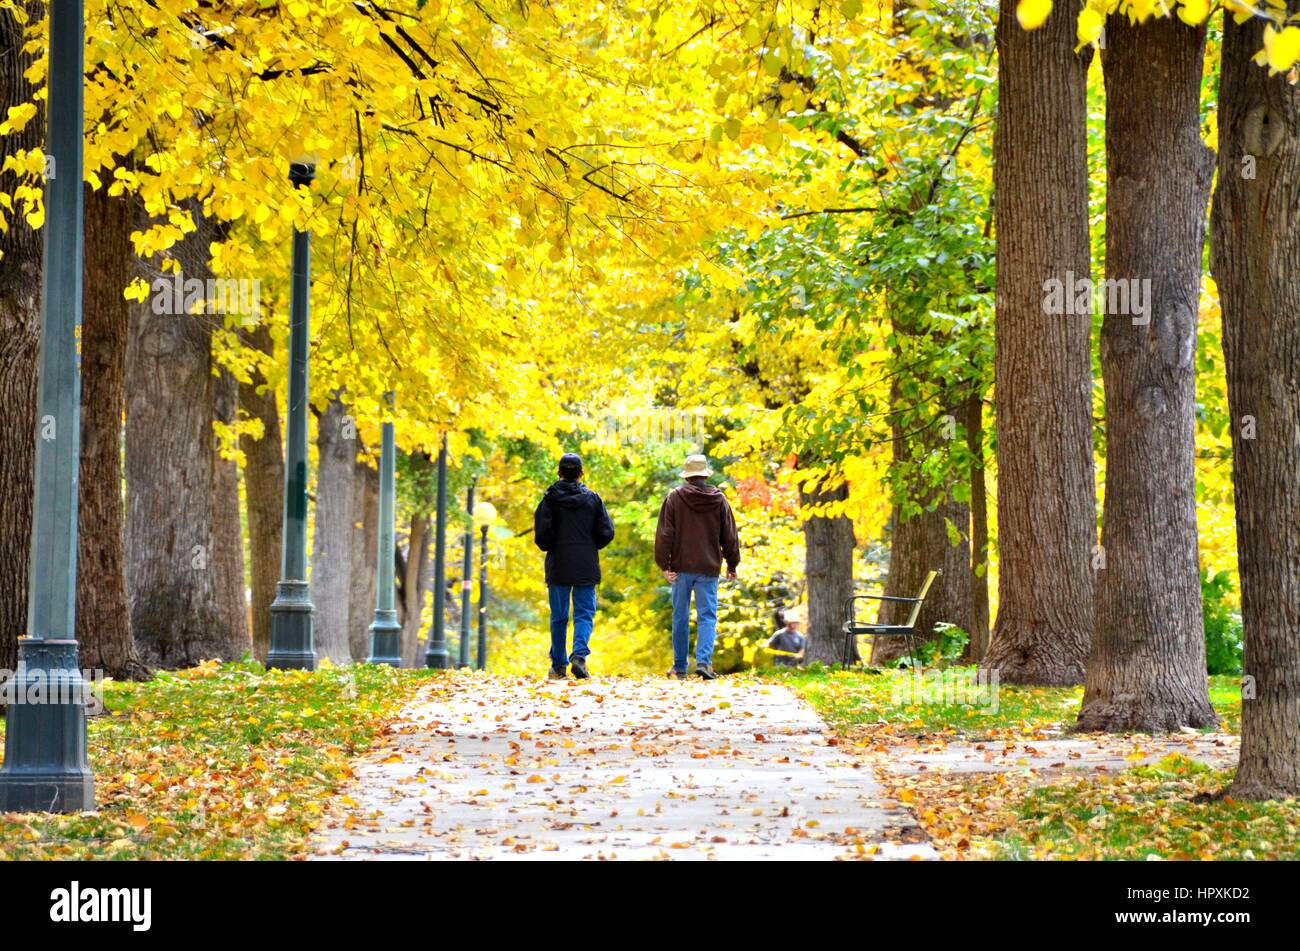 Walking under the Golden Fall Leaves - Stock Image